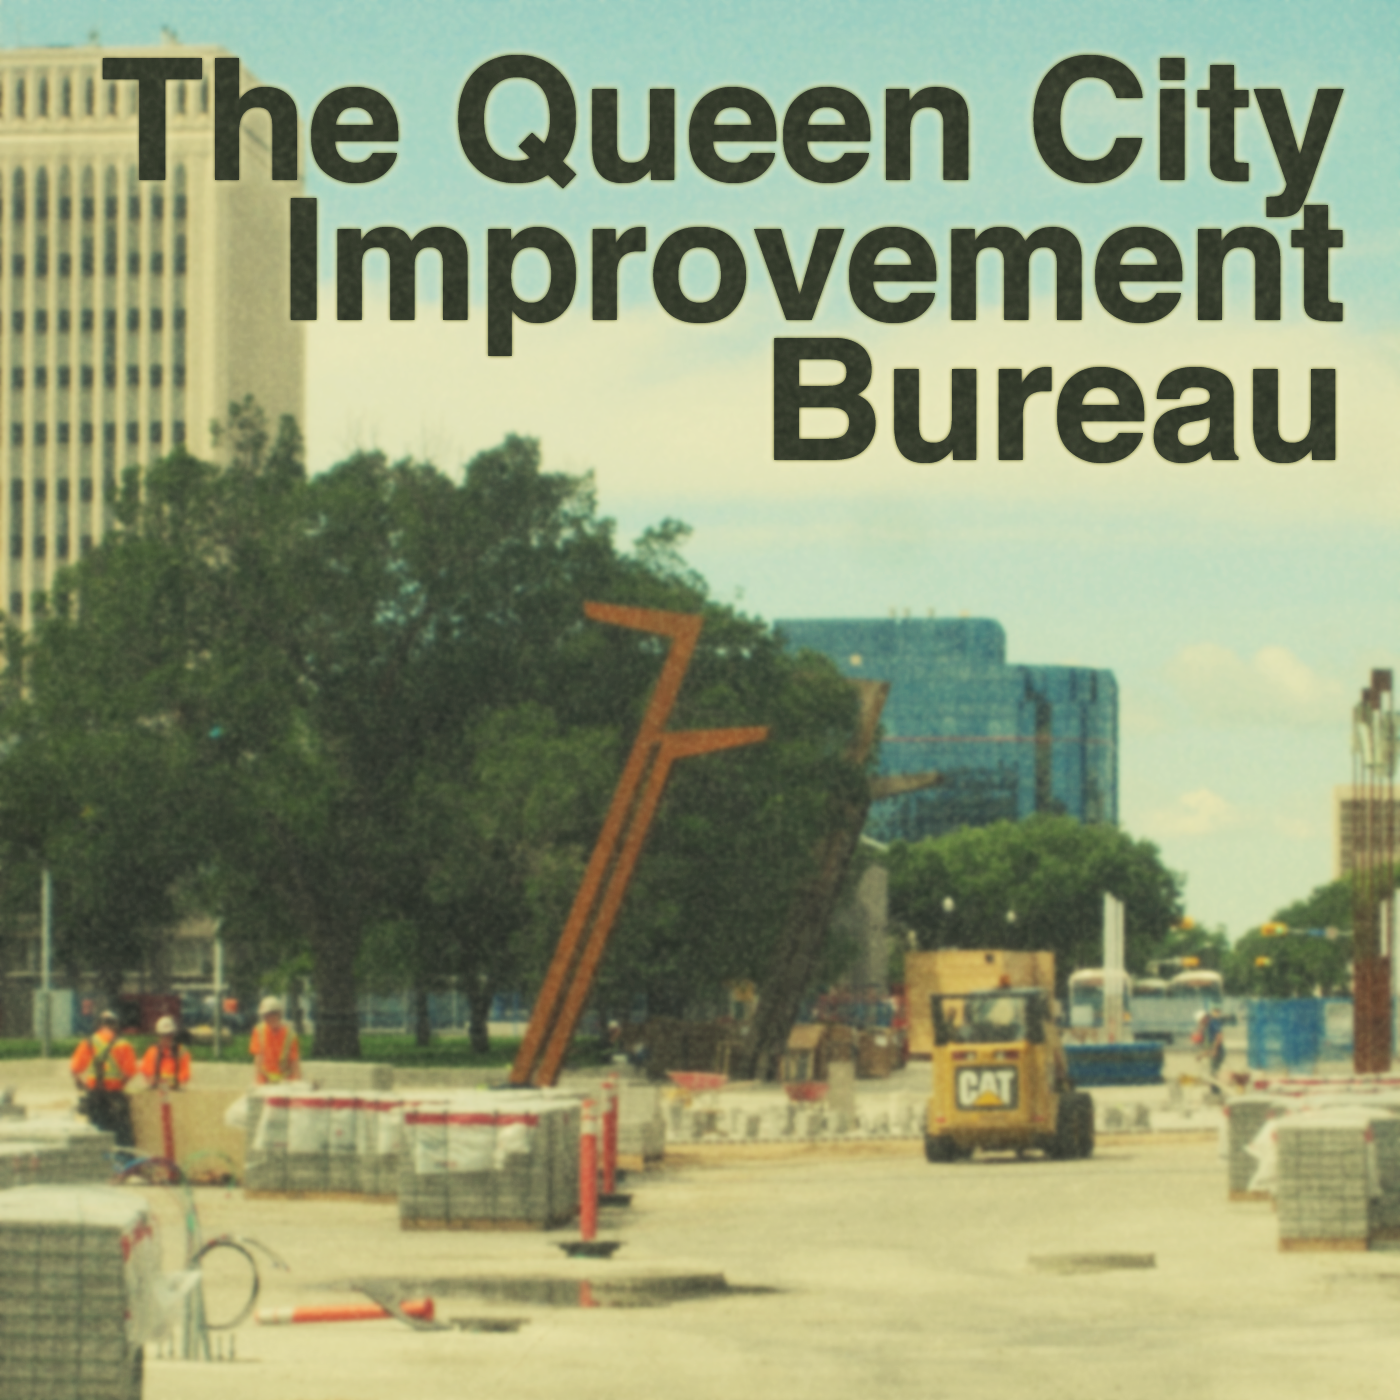 Queen City Improvement Bureau